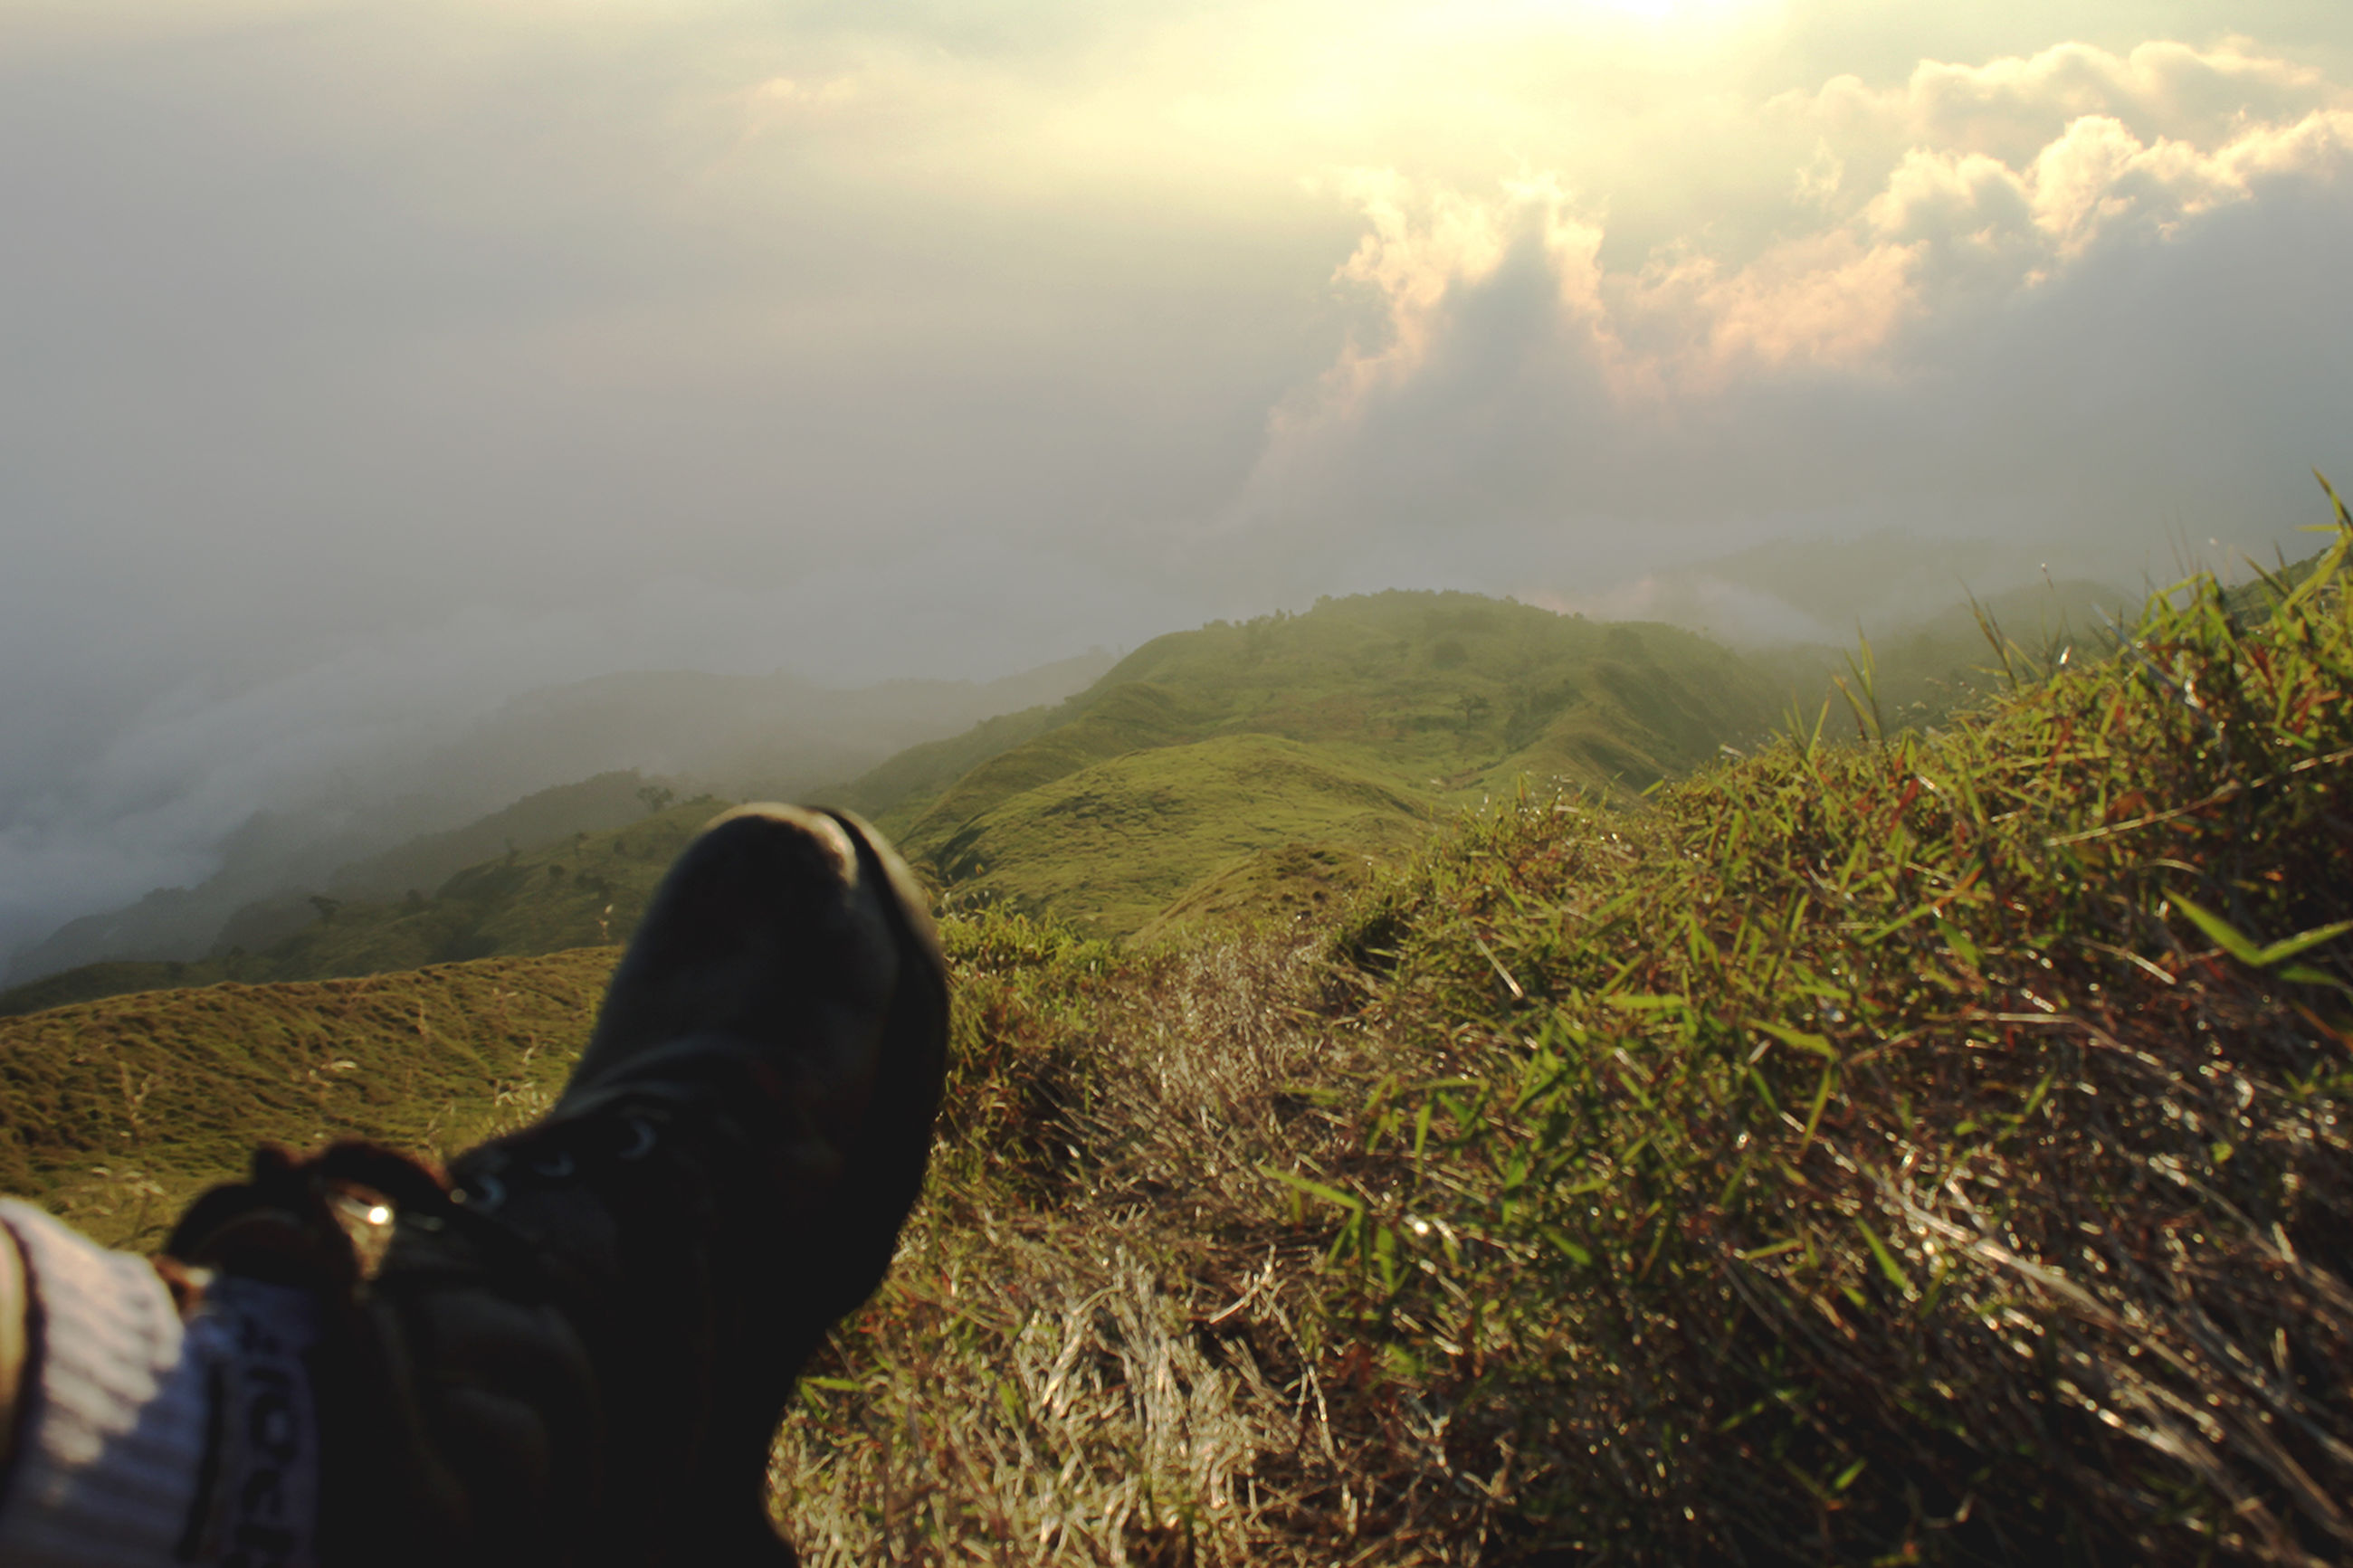 mountain, nature, one person, personal perspective, human leg, landscape, human body part, beauty in nature, cloud - sky, outdoors, real people, sky, day, low section, scenics, adventure, men, grass, human hand, people